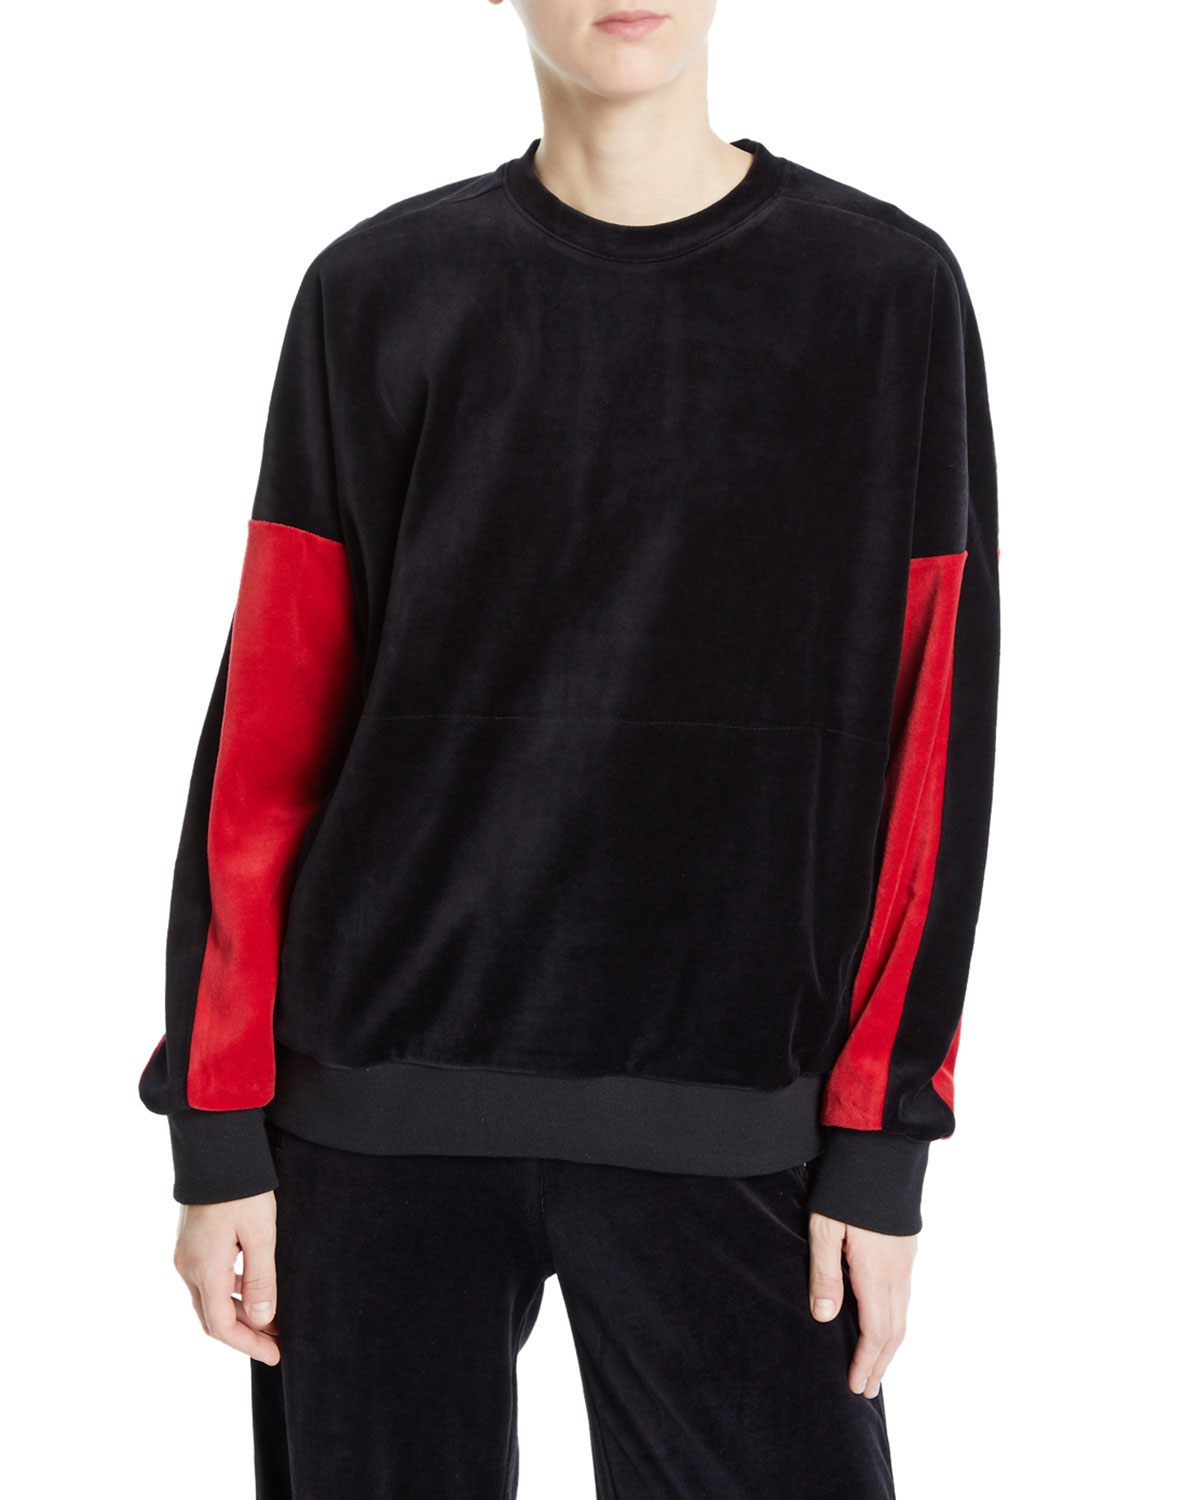 ALALA Velour Crewneck Pullover Sweater With Colorblock Sleeves in Black/Red